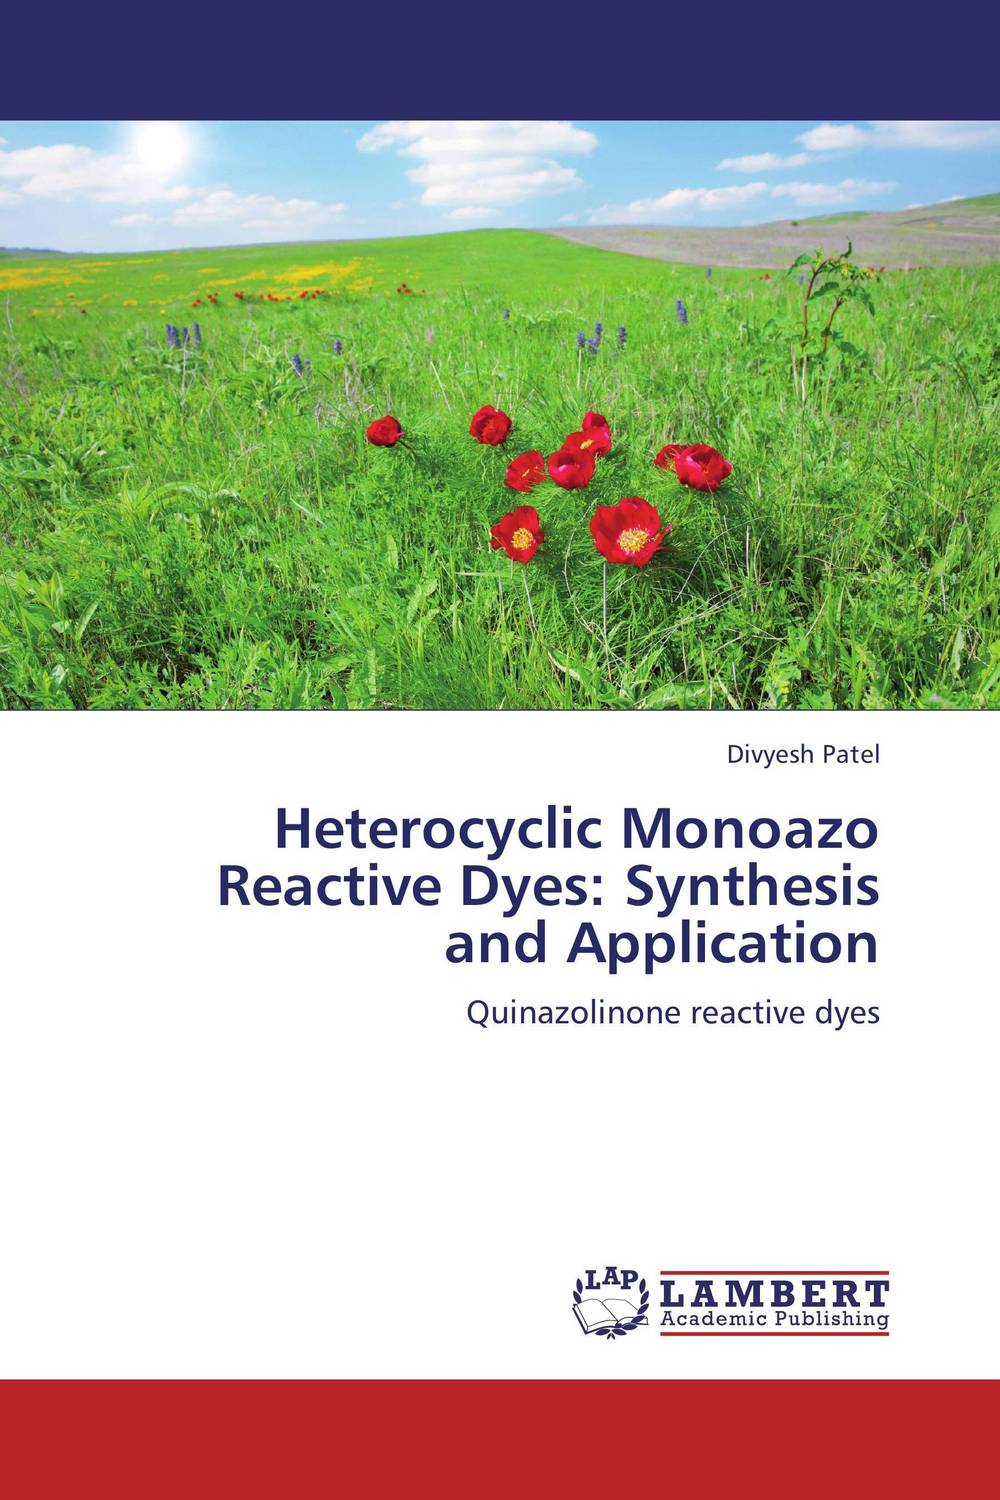 Heterocyclic Monoazo Reactive Dyes: Synthesis and Application d rakesh s s kalyan kamal and sumair faisal ahmed synthesis